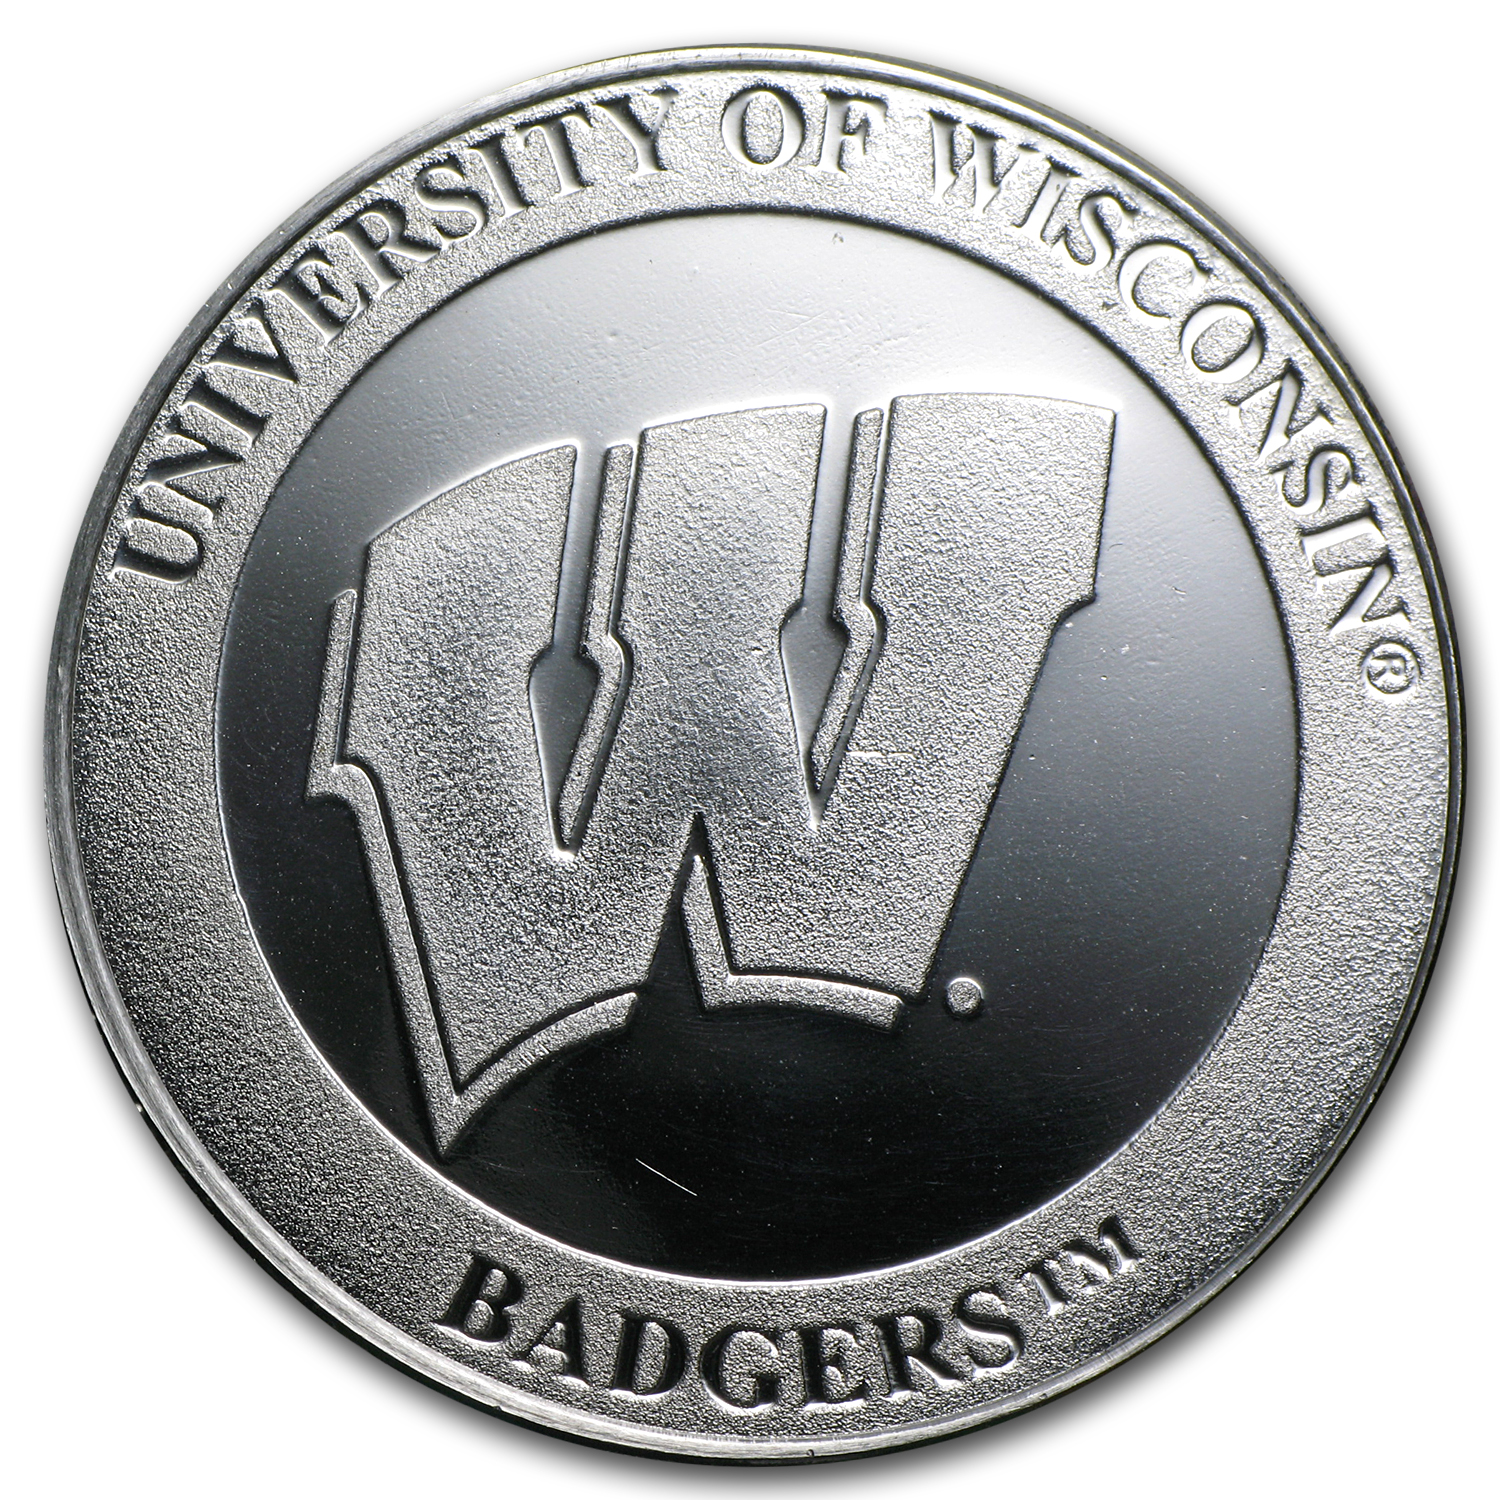 1 oz Silver Round - University of Wisconsin